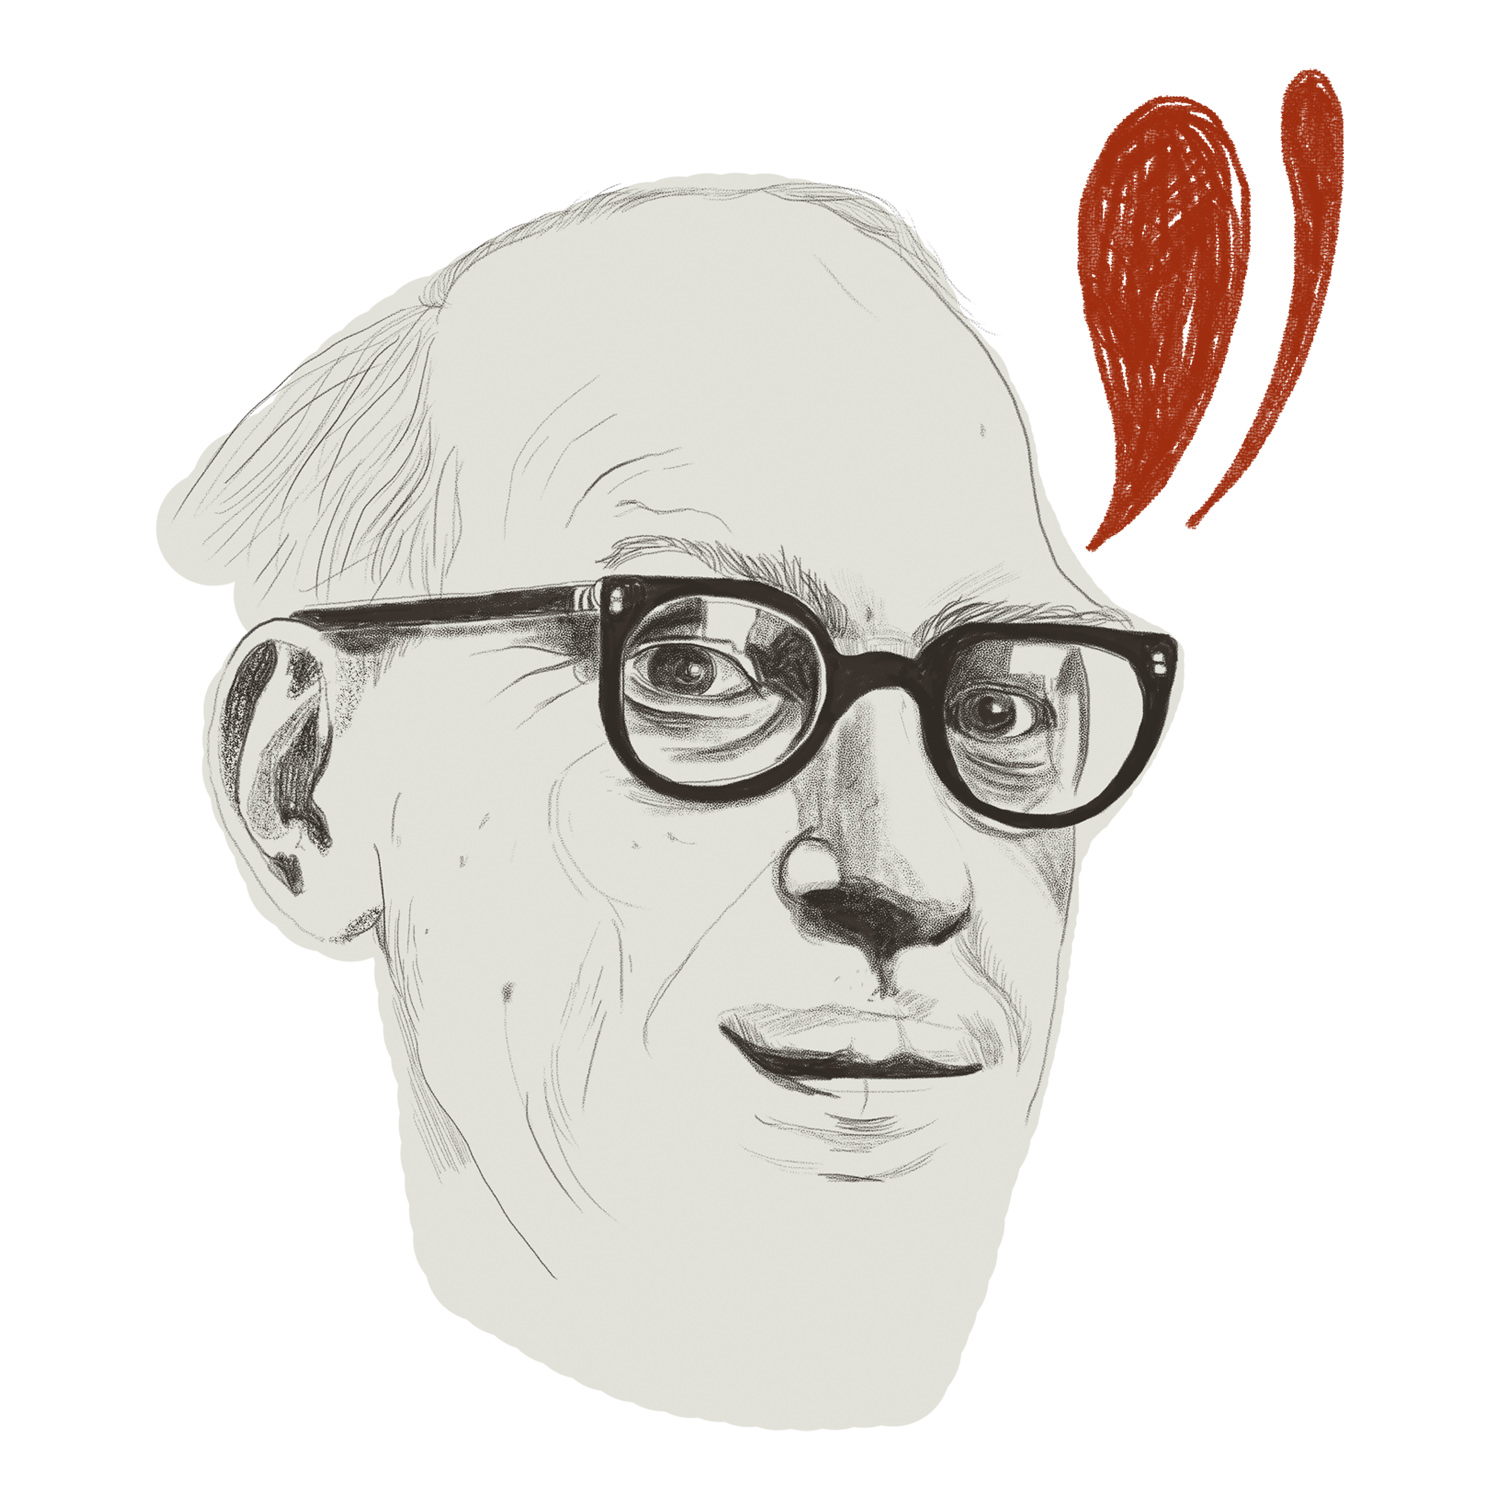 Philip Larkin   Philip Larkin was an English poet who wrote about melancholy, isolation, death, and love.